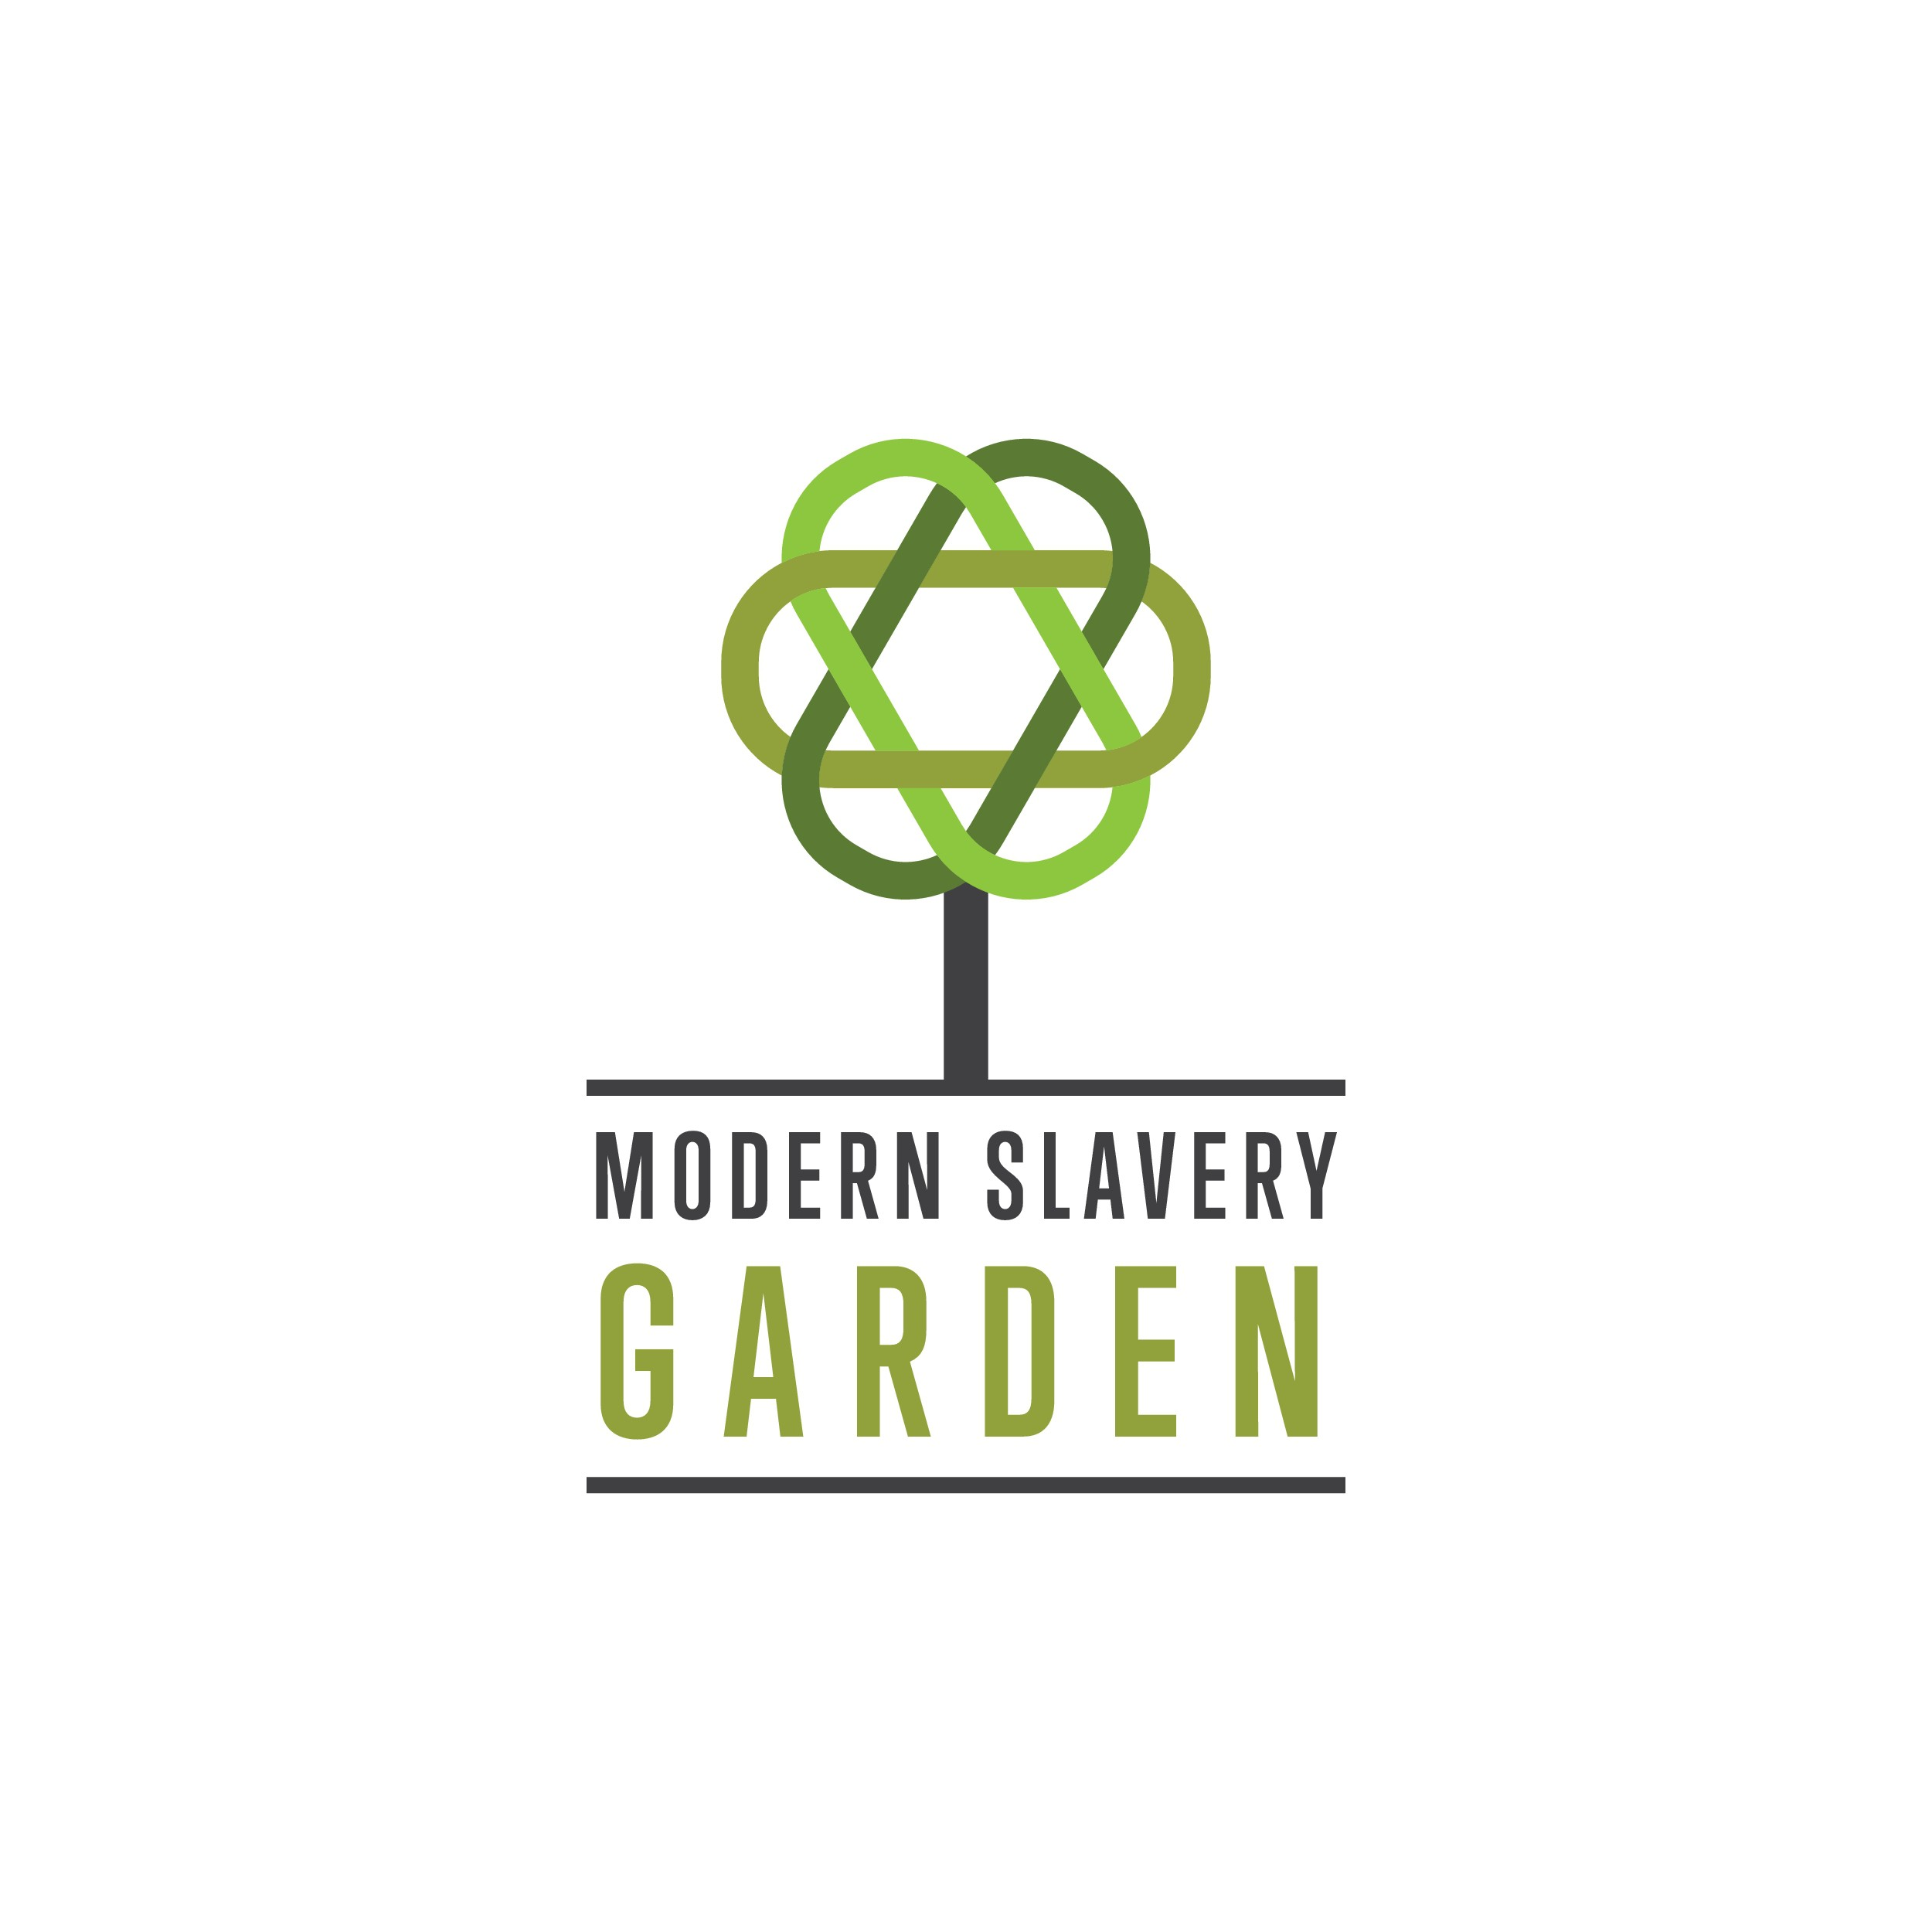 Logo for a garden dedicated towards awakening people to become abolitionists of modern slavery